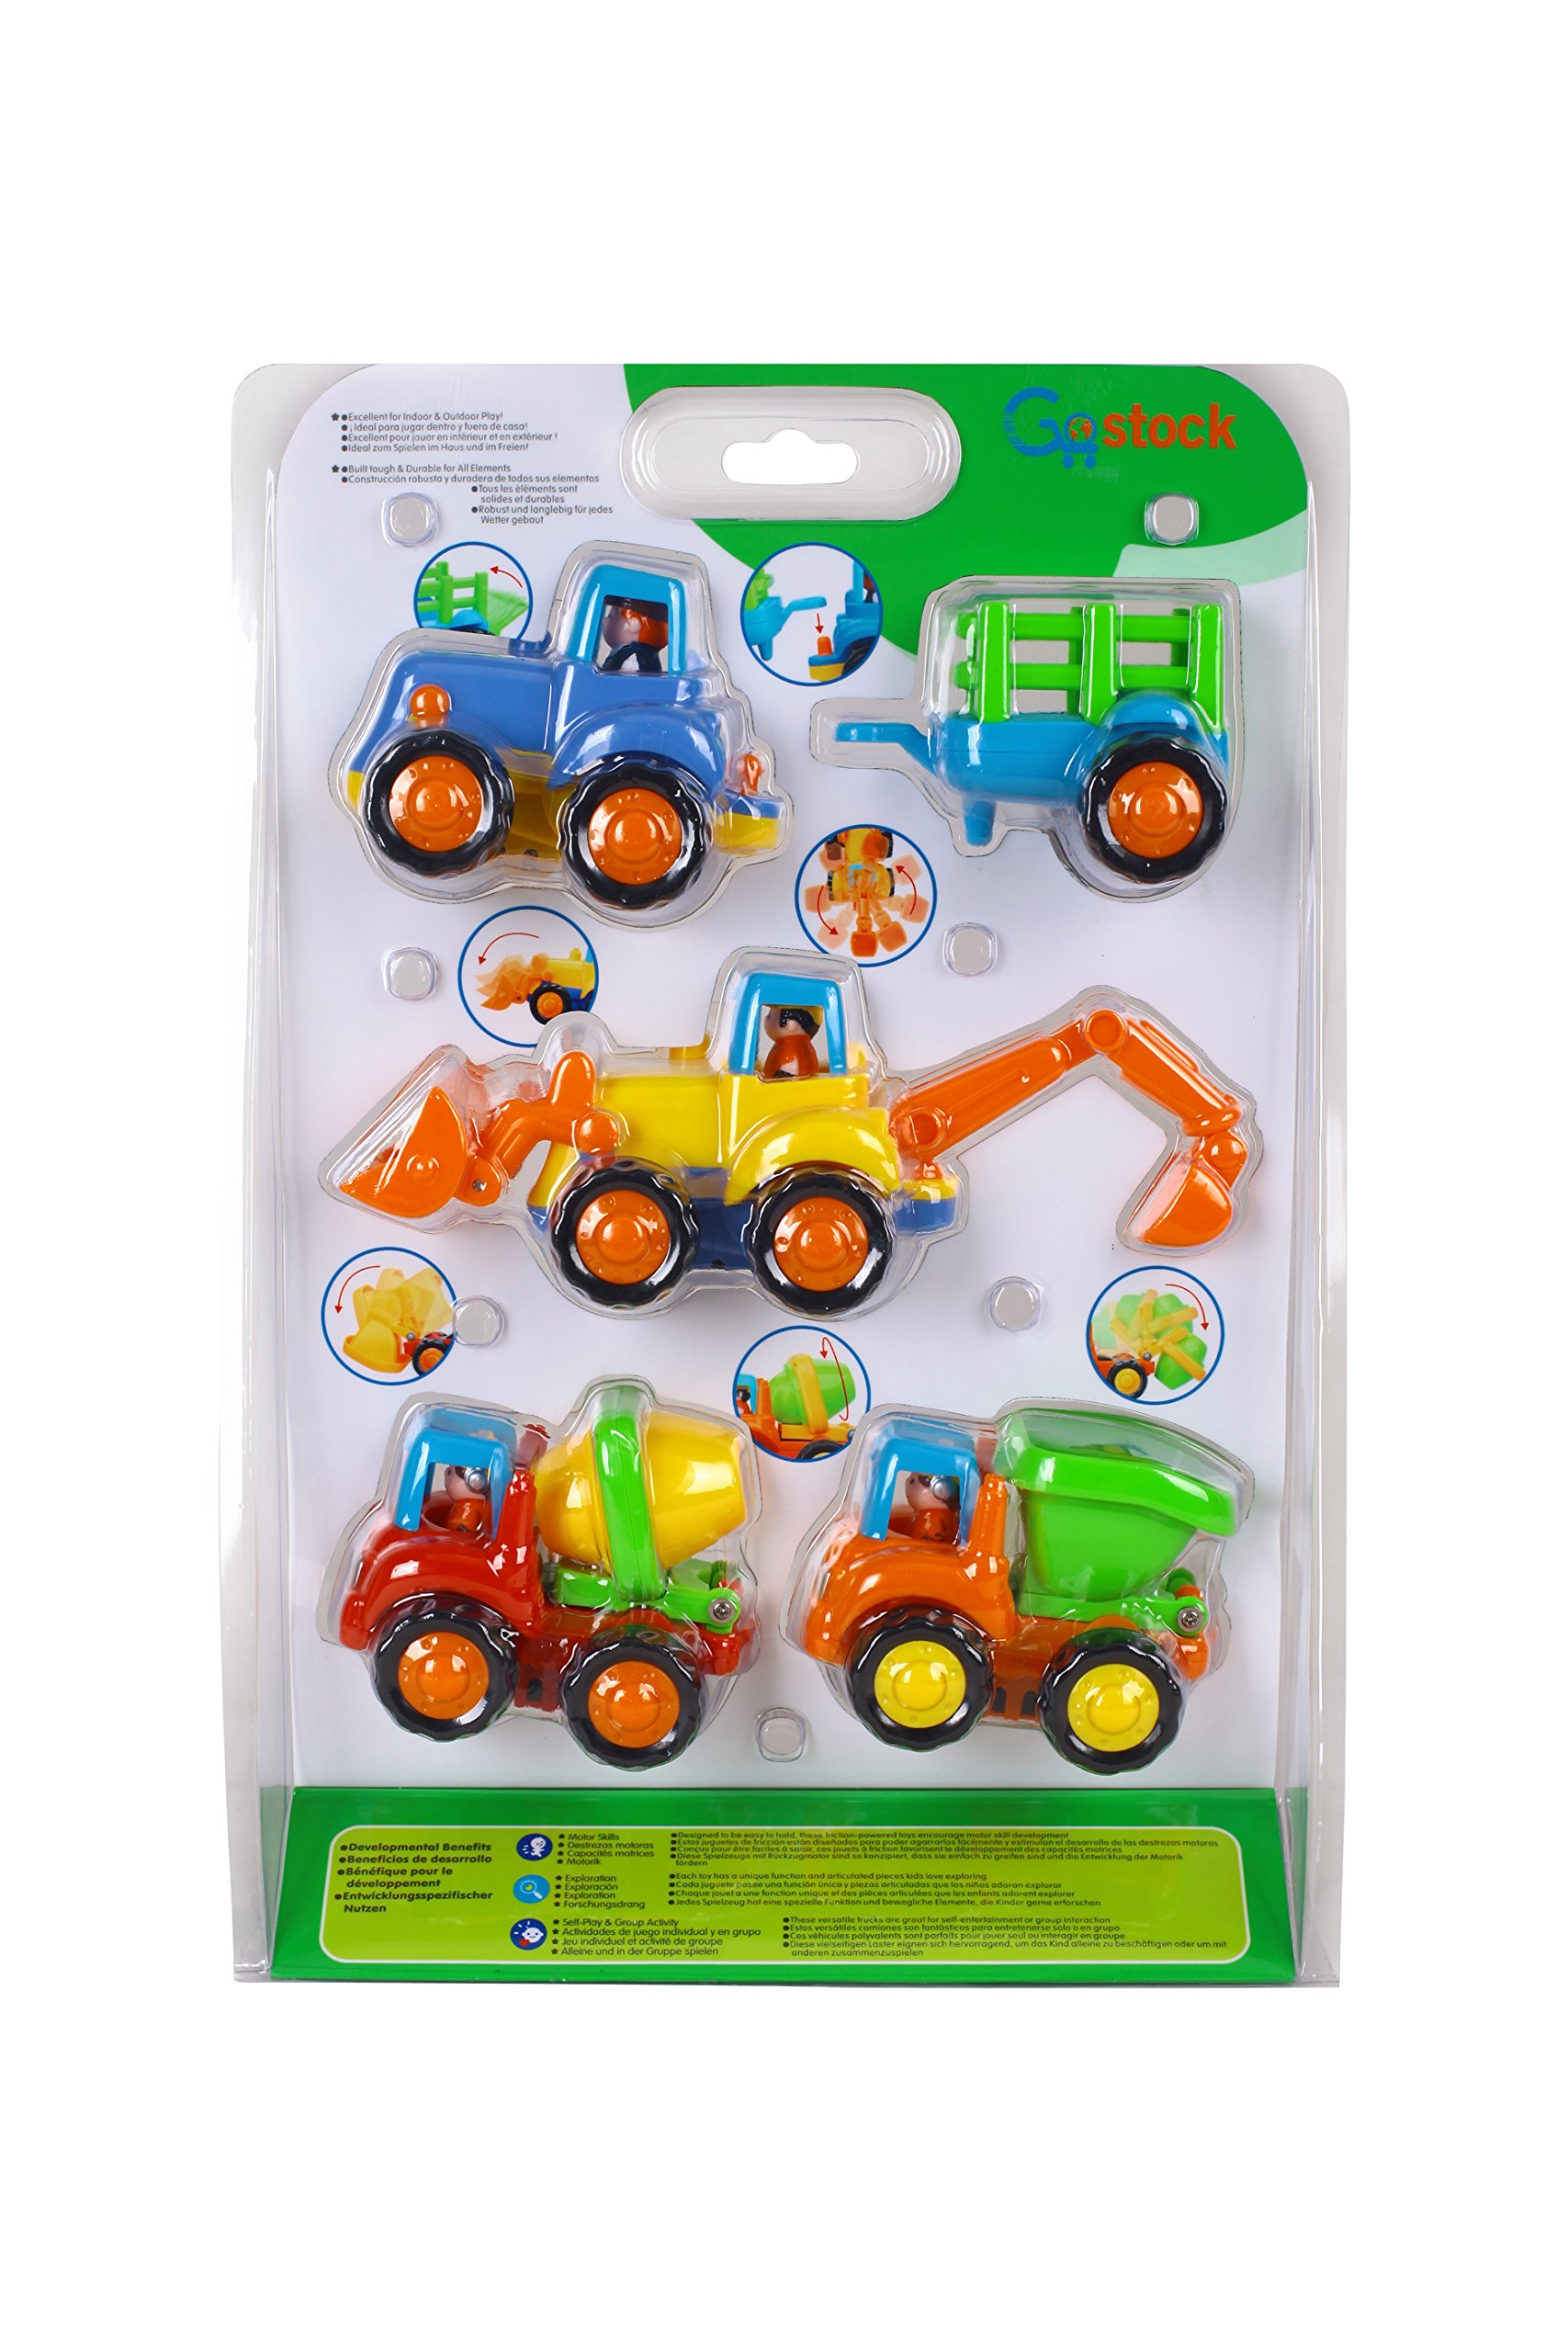 Friction Powered Cars Push and Go Car Construction Vehicles Toys Set of 4 Tractor,Bulldozer,Cement Mixer Truck,Dumper Push Back Cartoon Play for  2 3 Years Old Boys Toddlers Kids Gift by GoStock (Image #6)